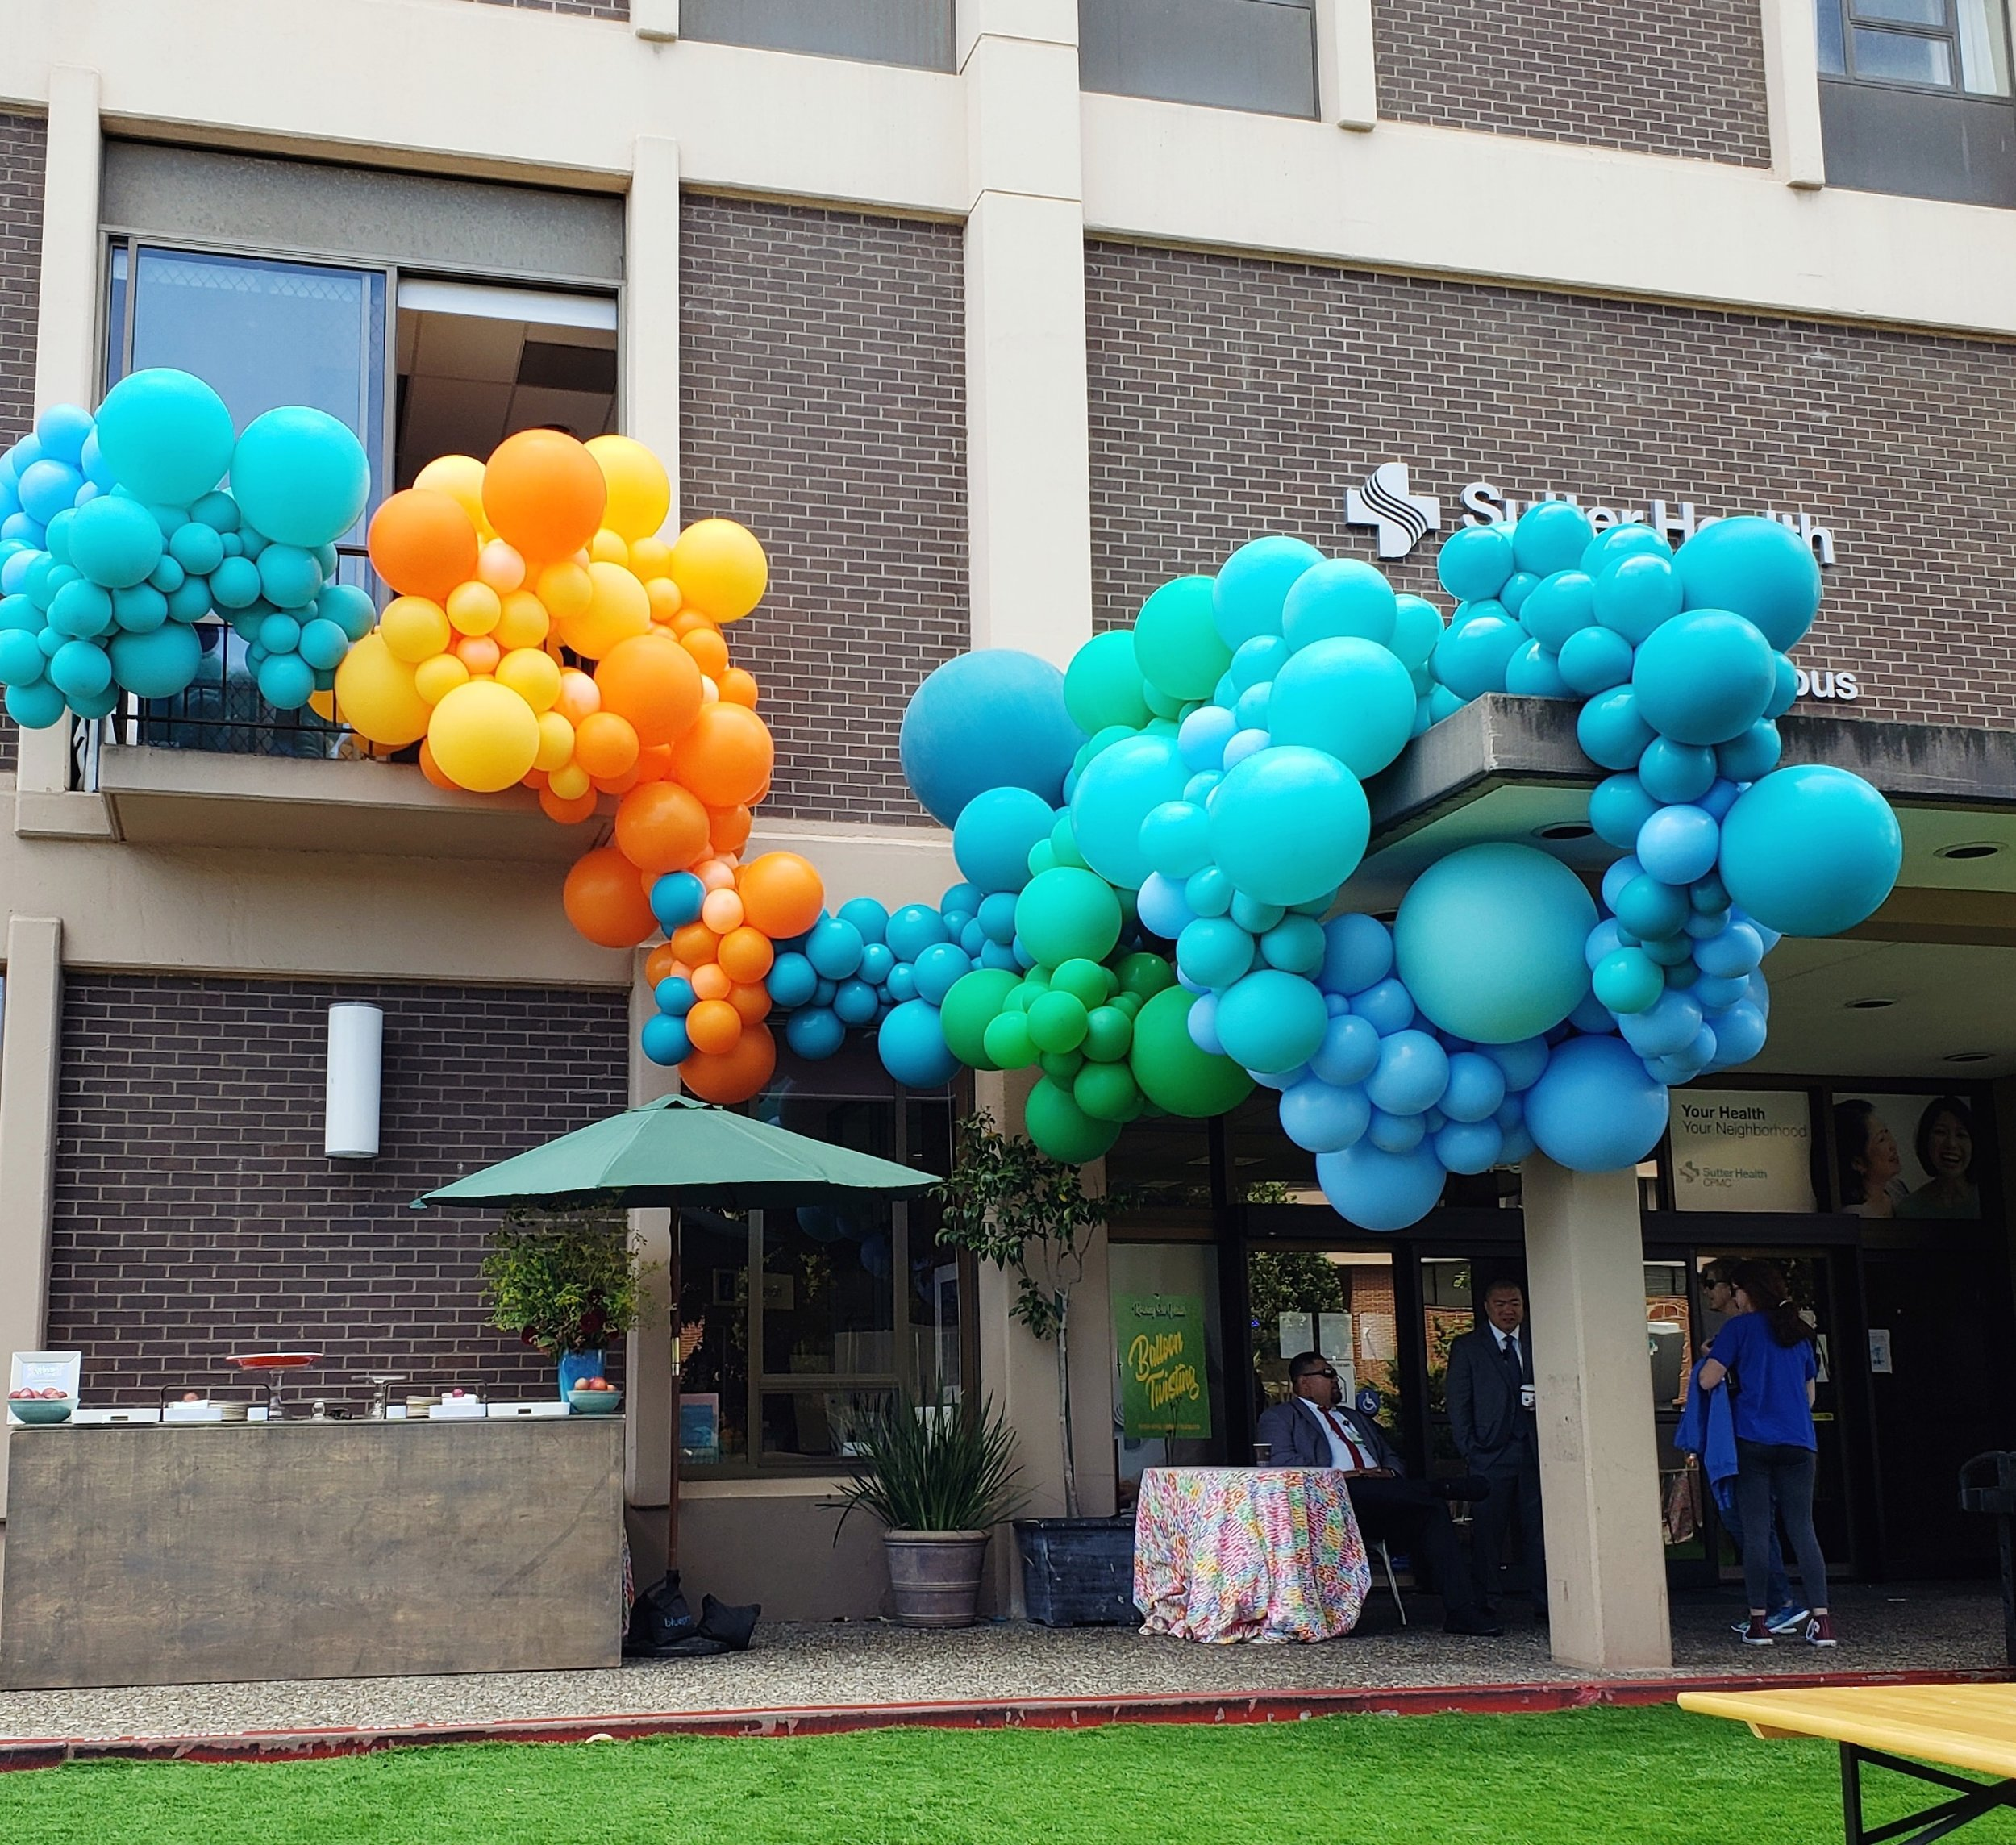 Sutter Hospital Balloon Installation San Francisco - Zim Balloons.jpg